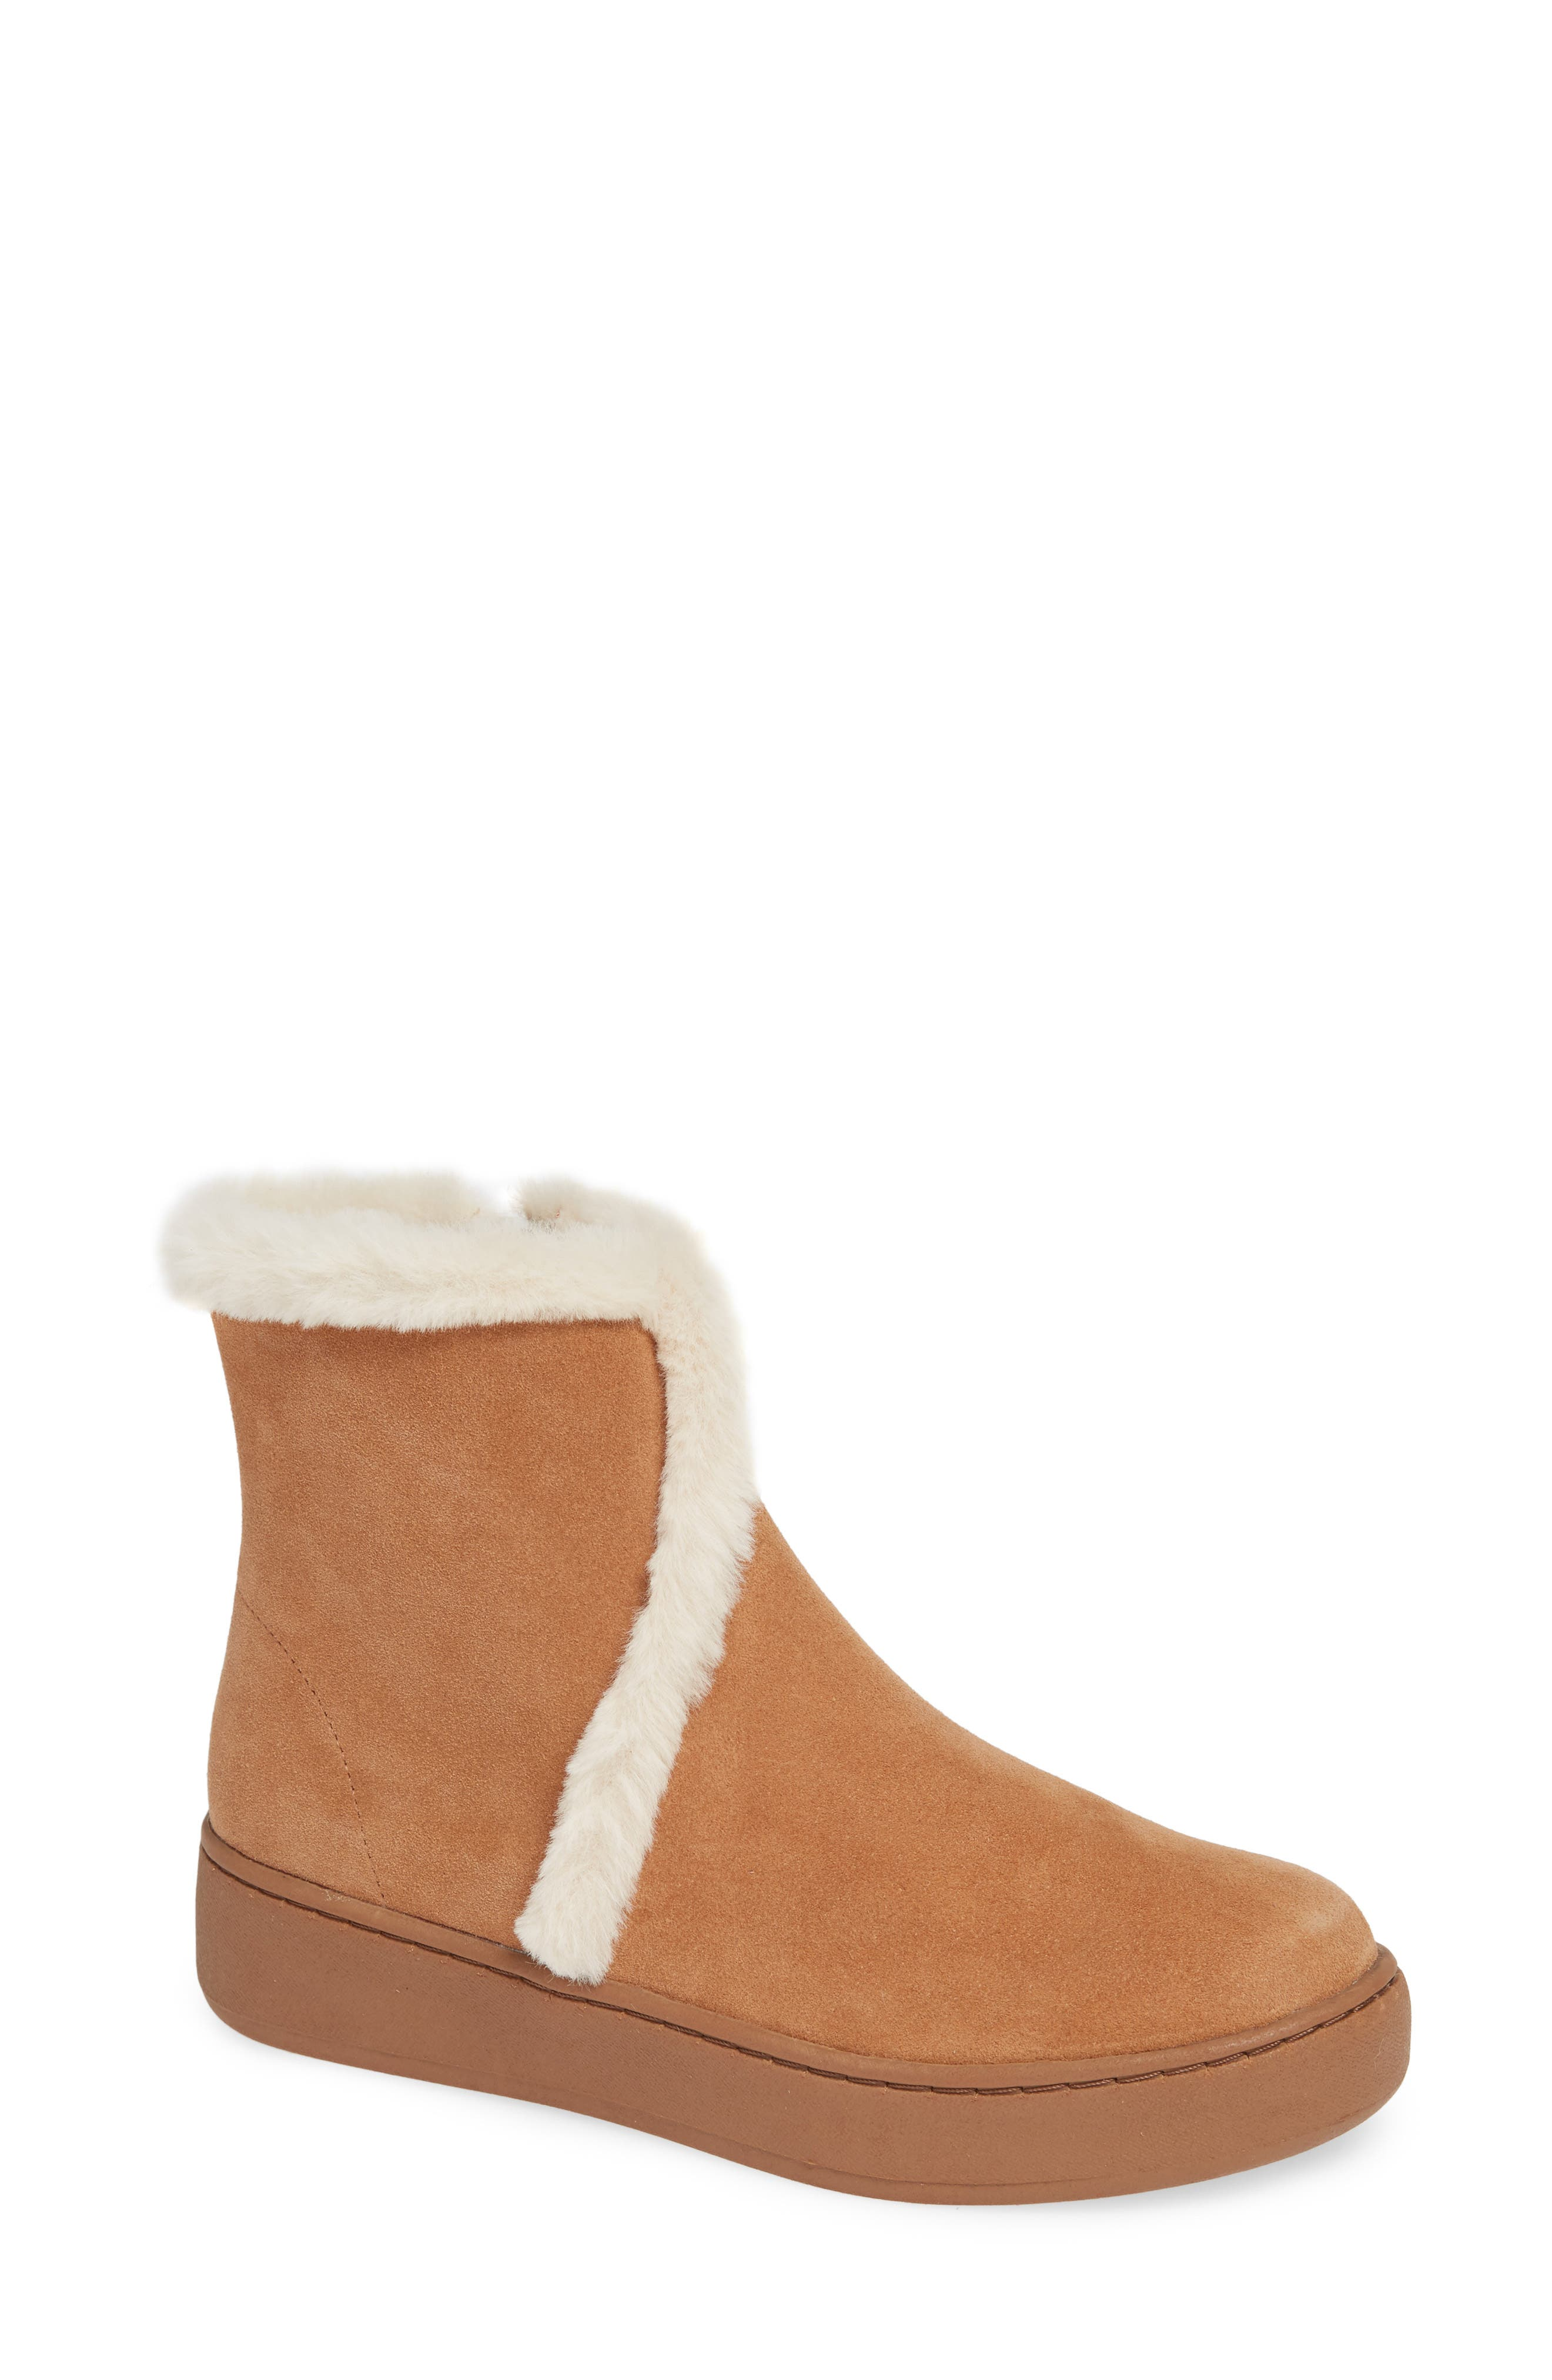 Soludos Whistler Cozy Faux Fur Lined Boot, Brown